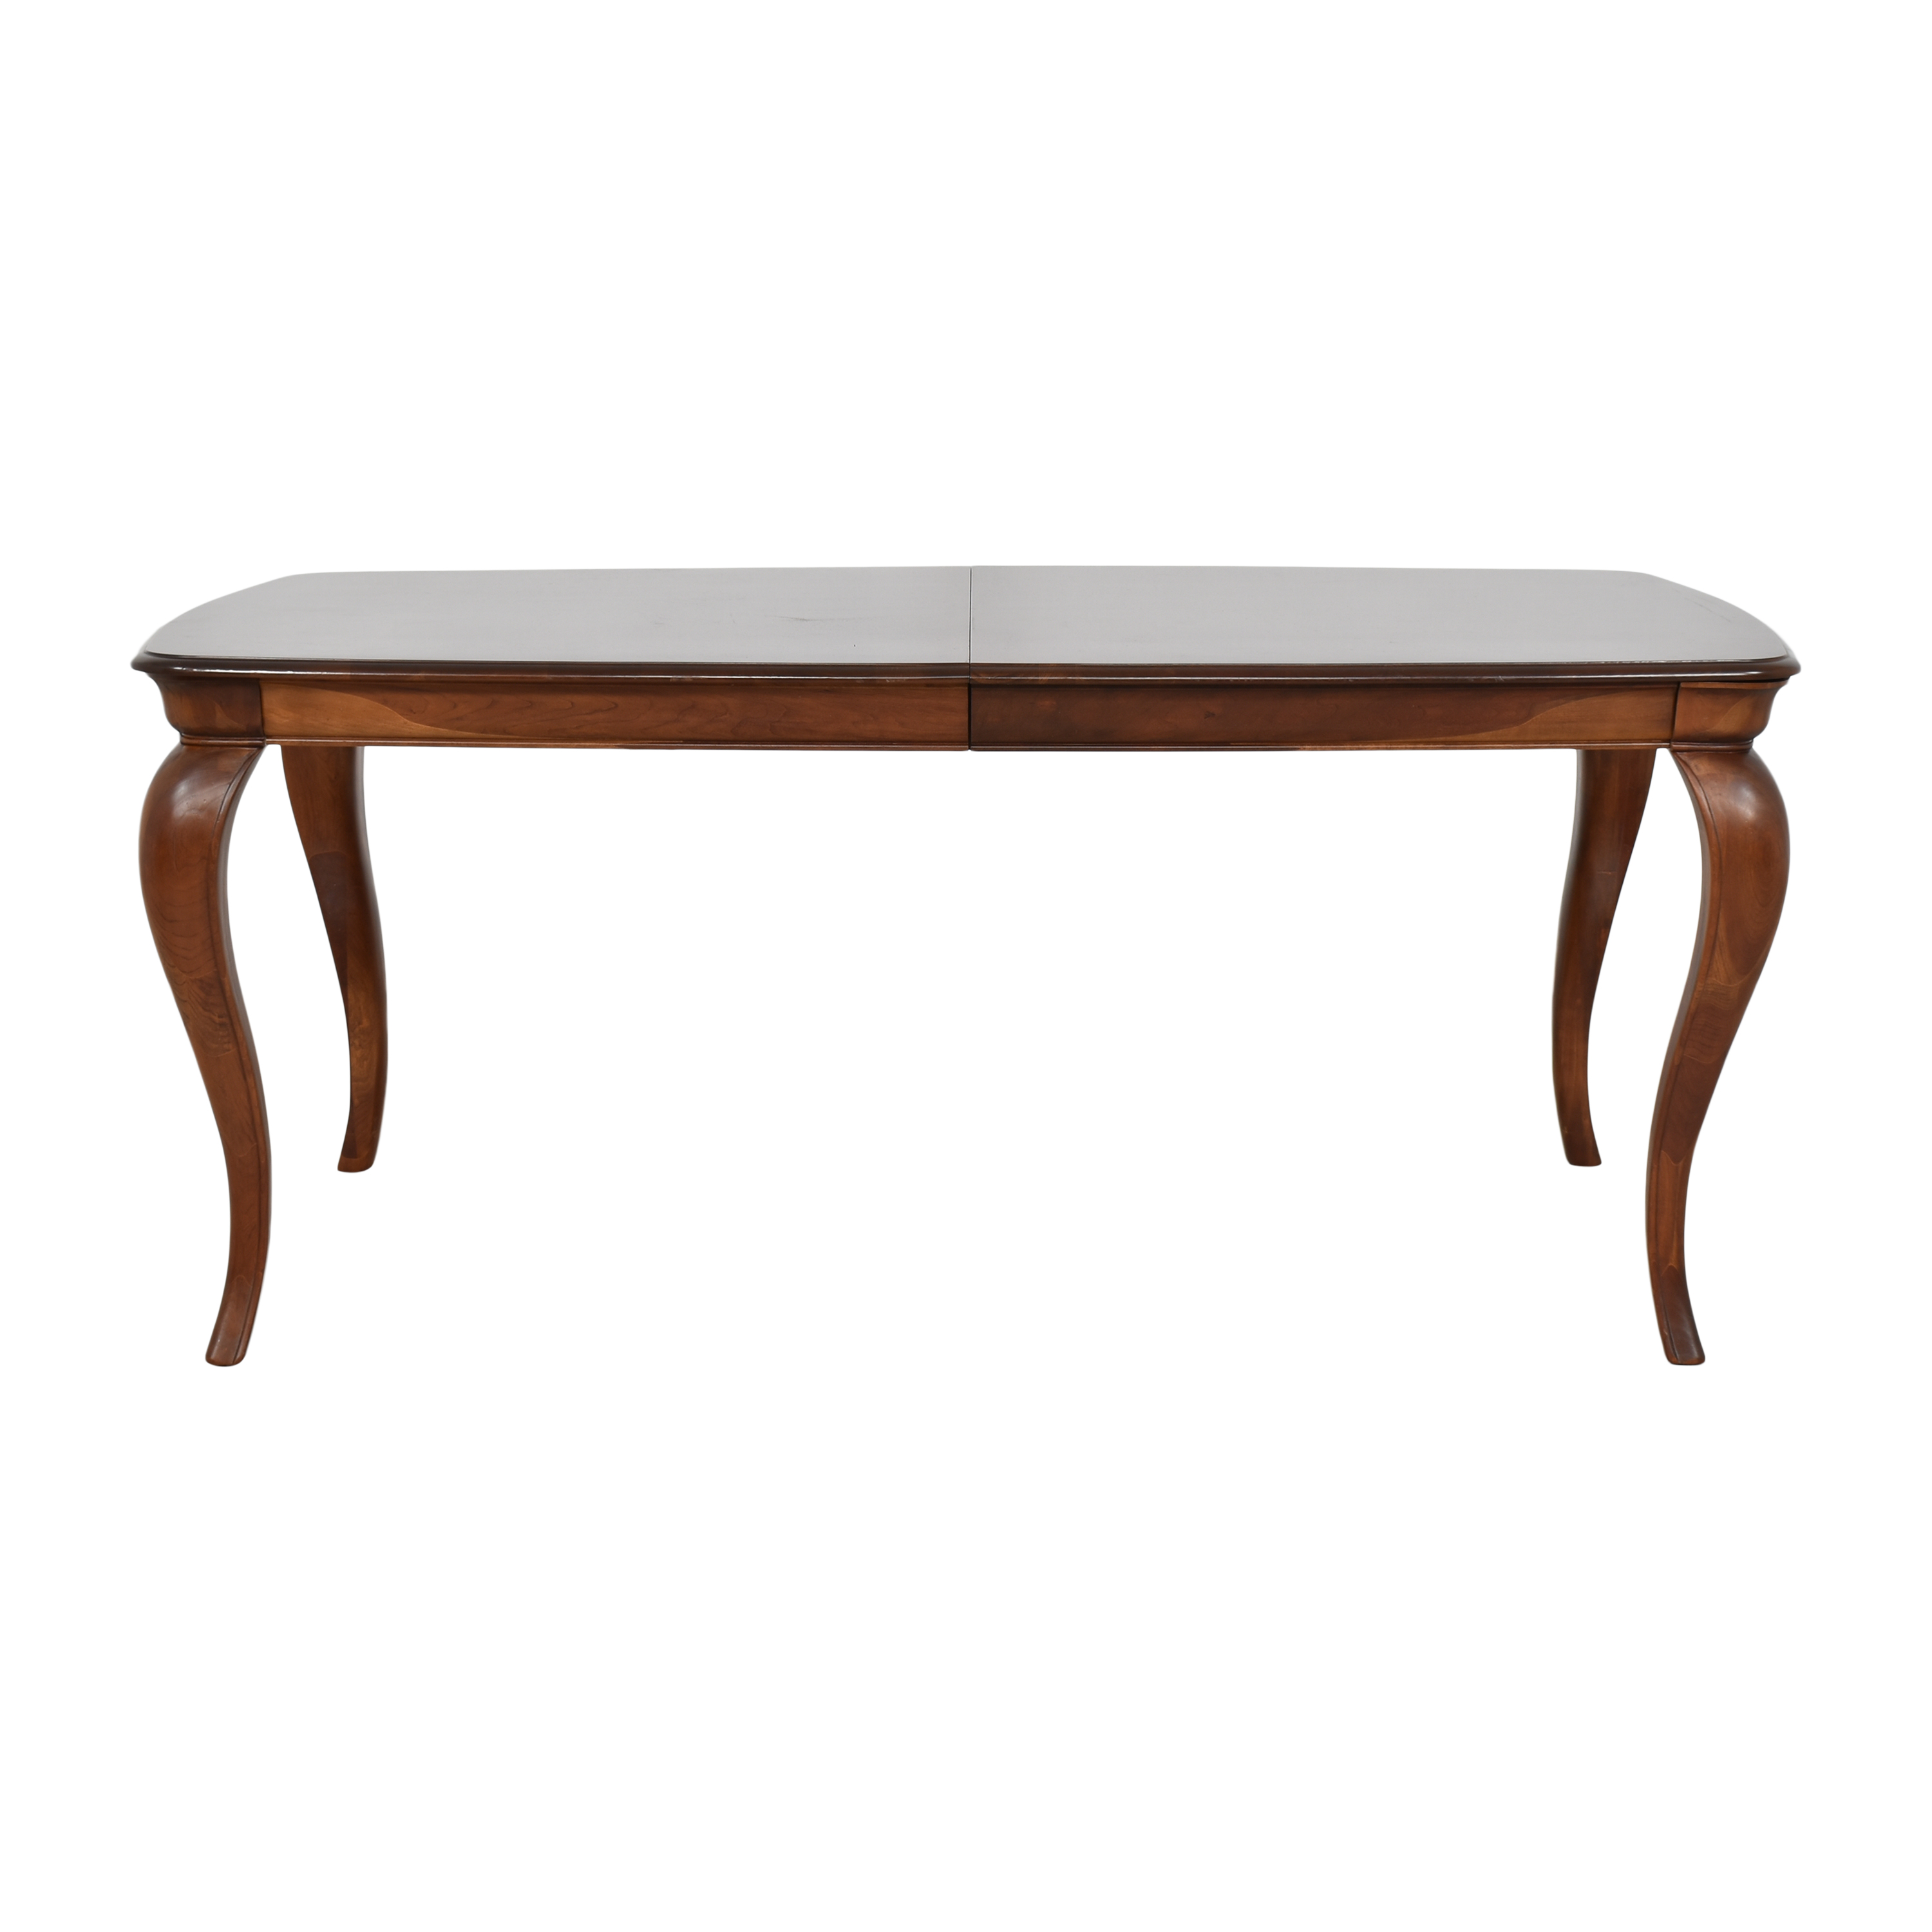 Pennsylvania House Pennsylvania House Queen Anne Extendable Dining Table  used